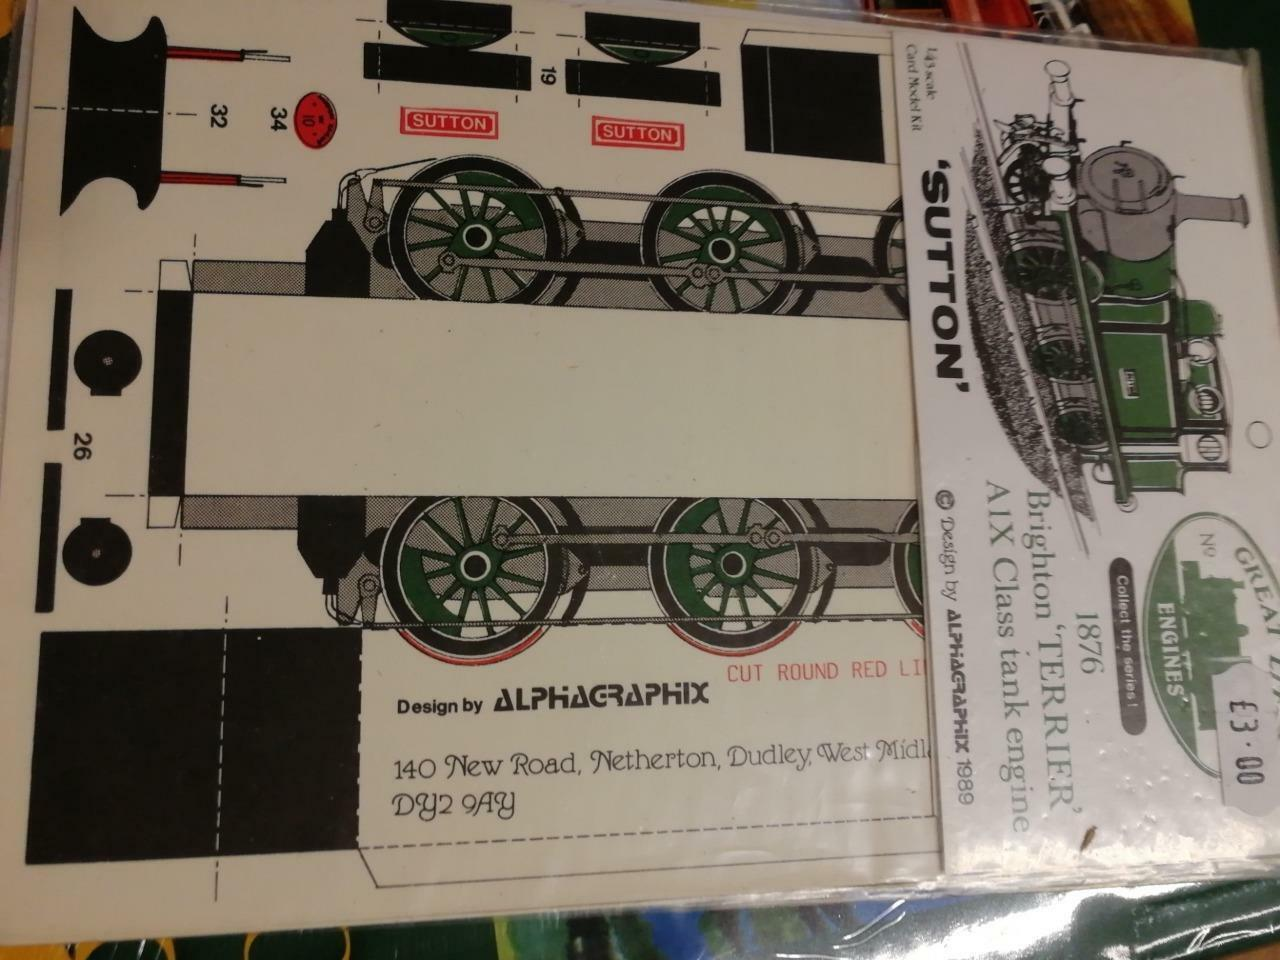 Alphagraphix Terrier A1X Sutton SR 7mm O gauge 1:43 card kit